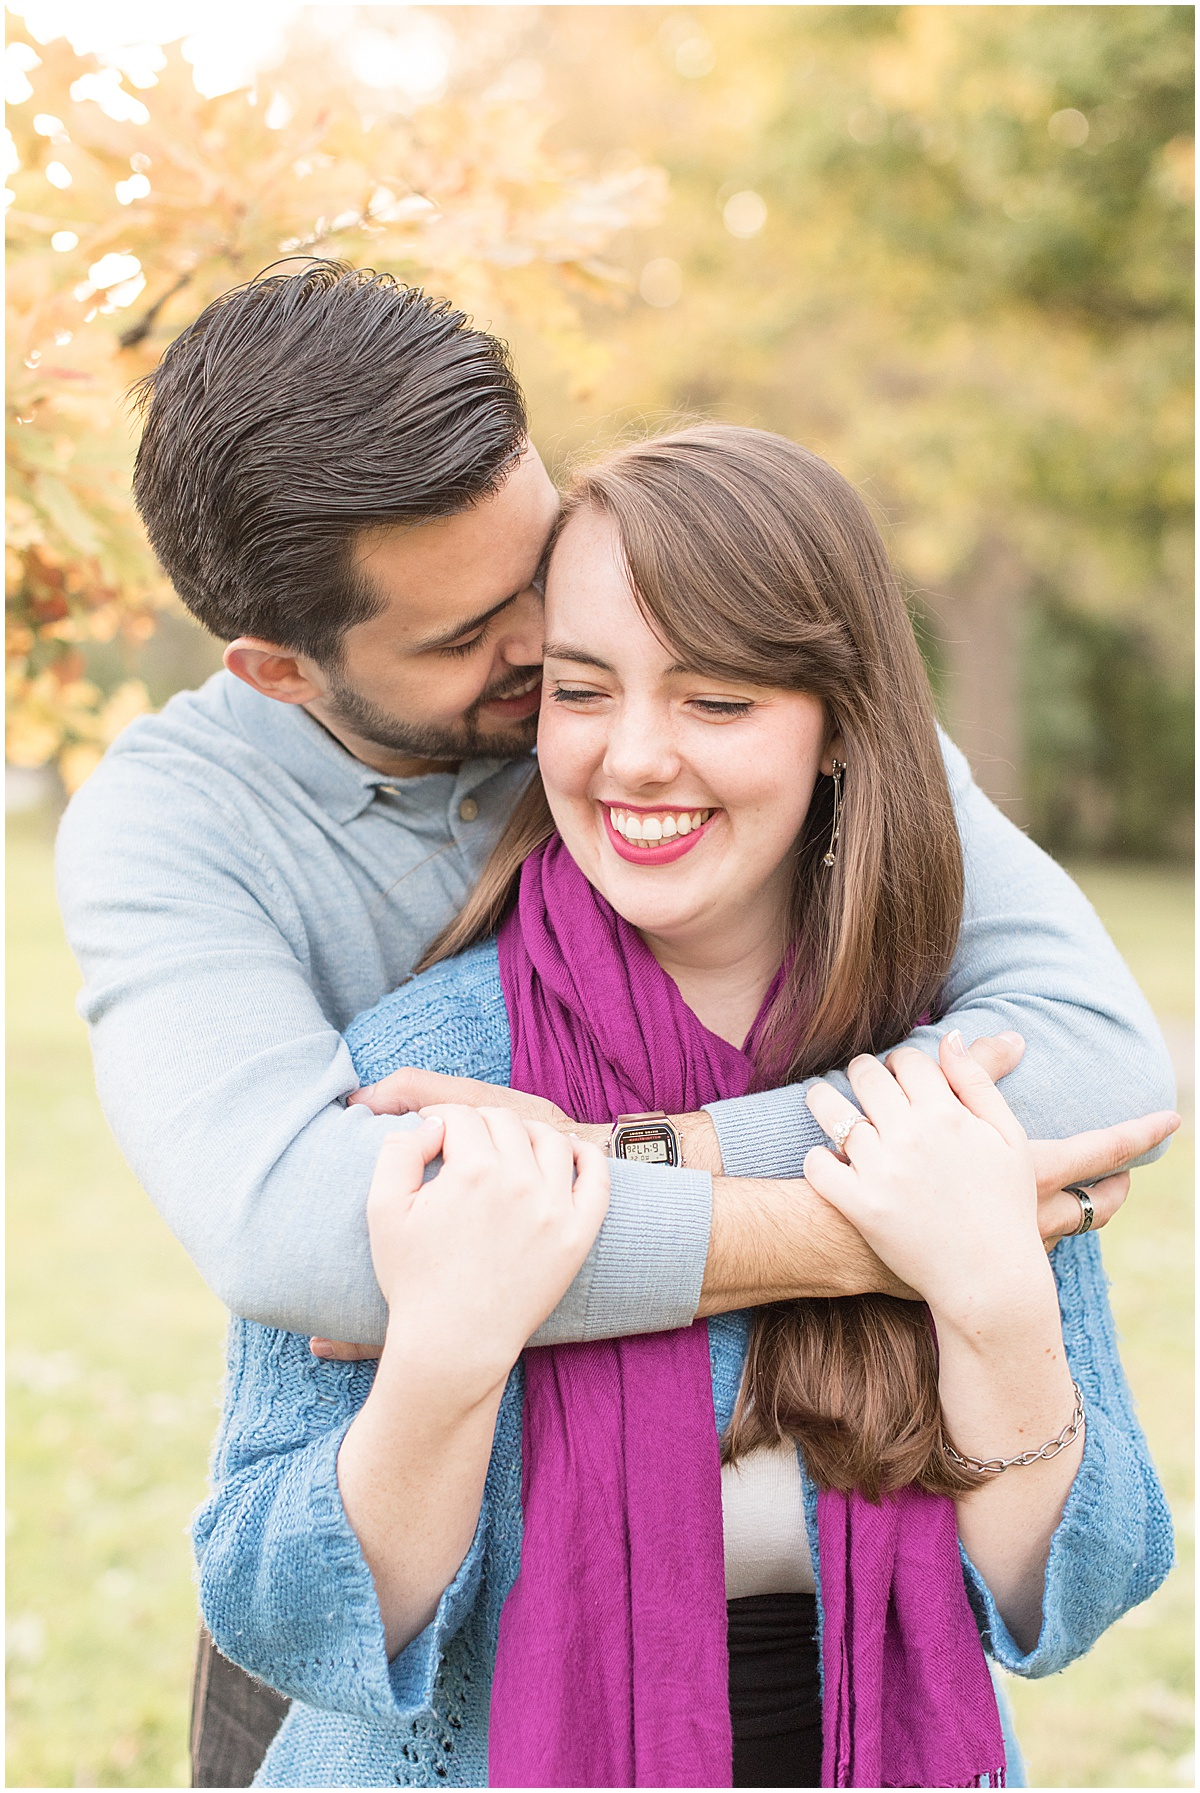 Nick Ballester and Madeline Pingel Engagement Session in Downtown Lafayette Indiana2.jpg